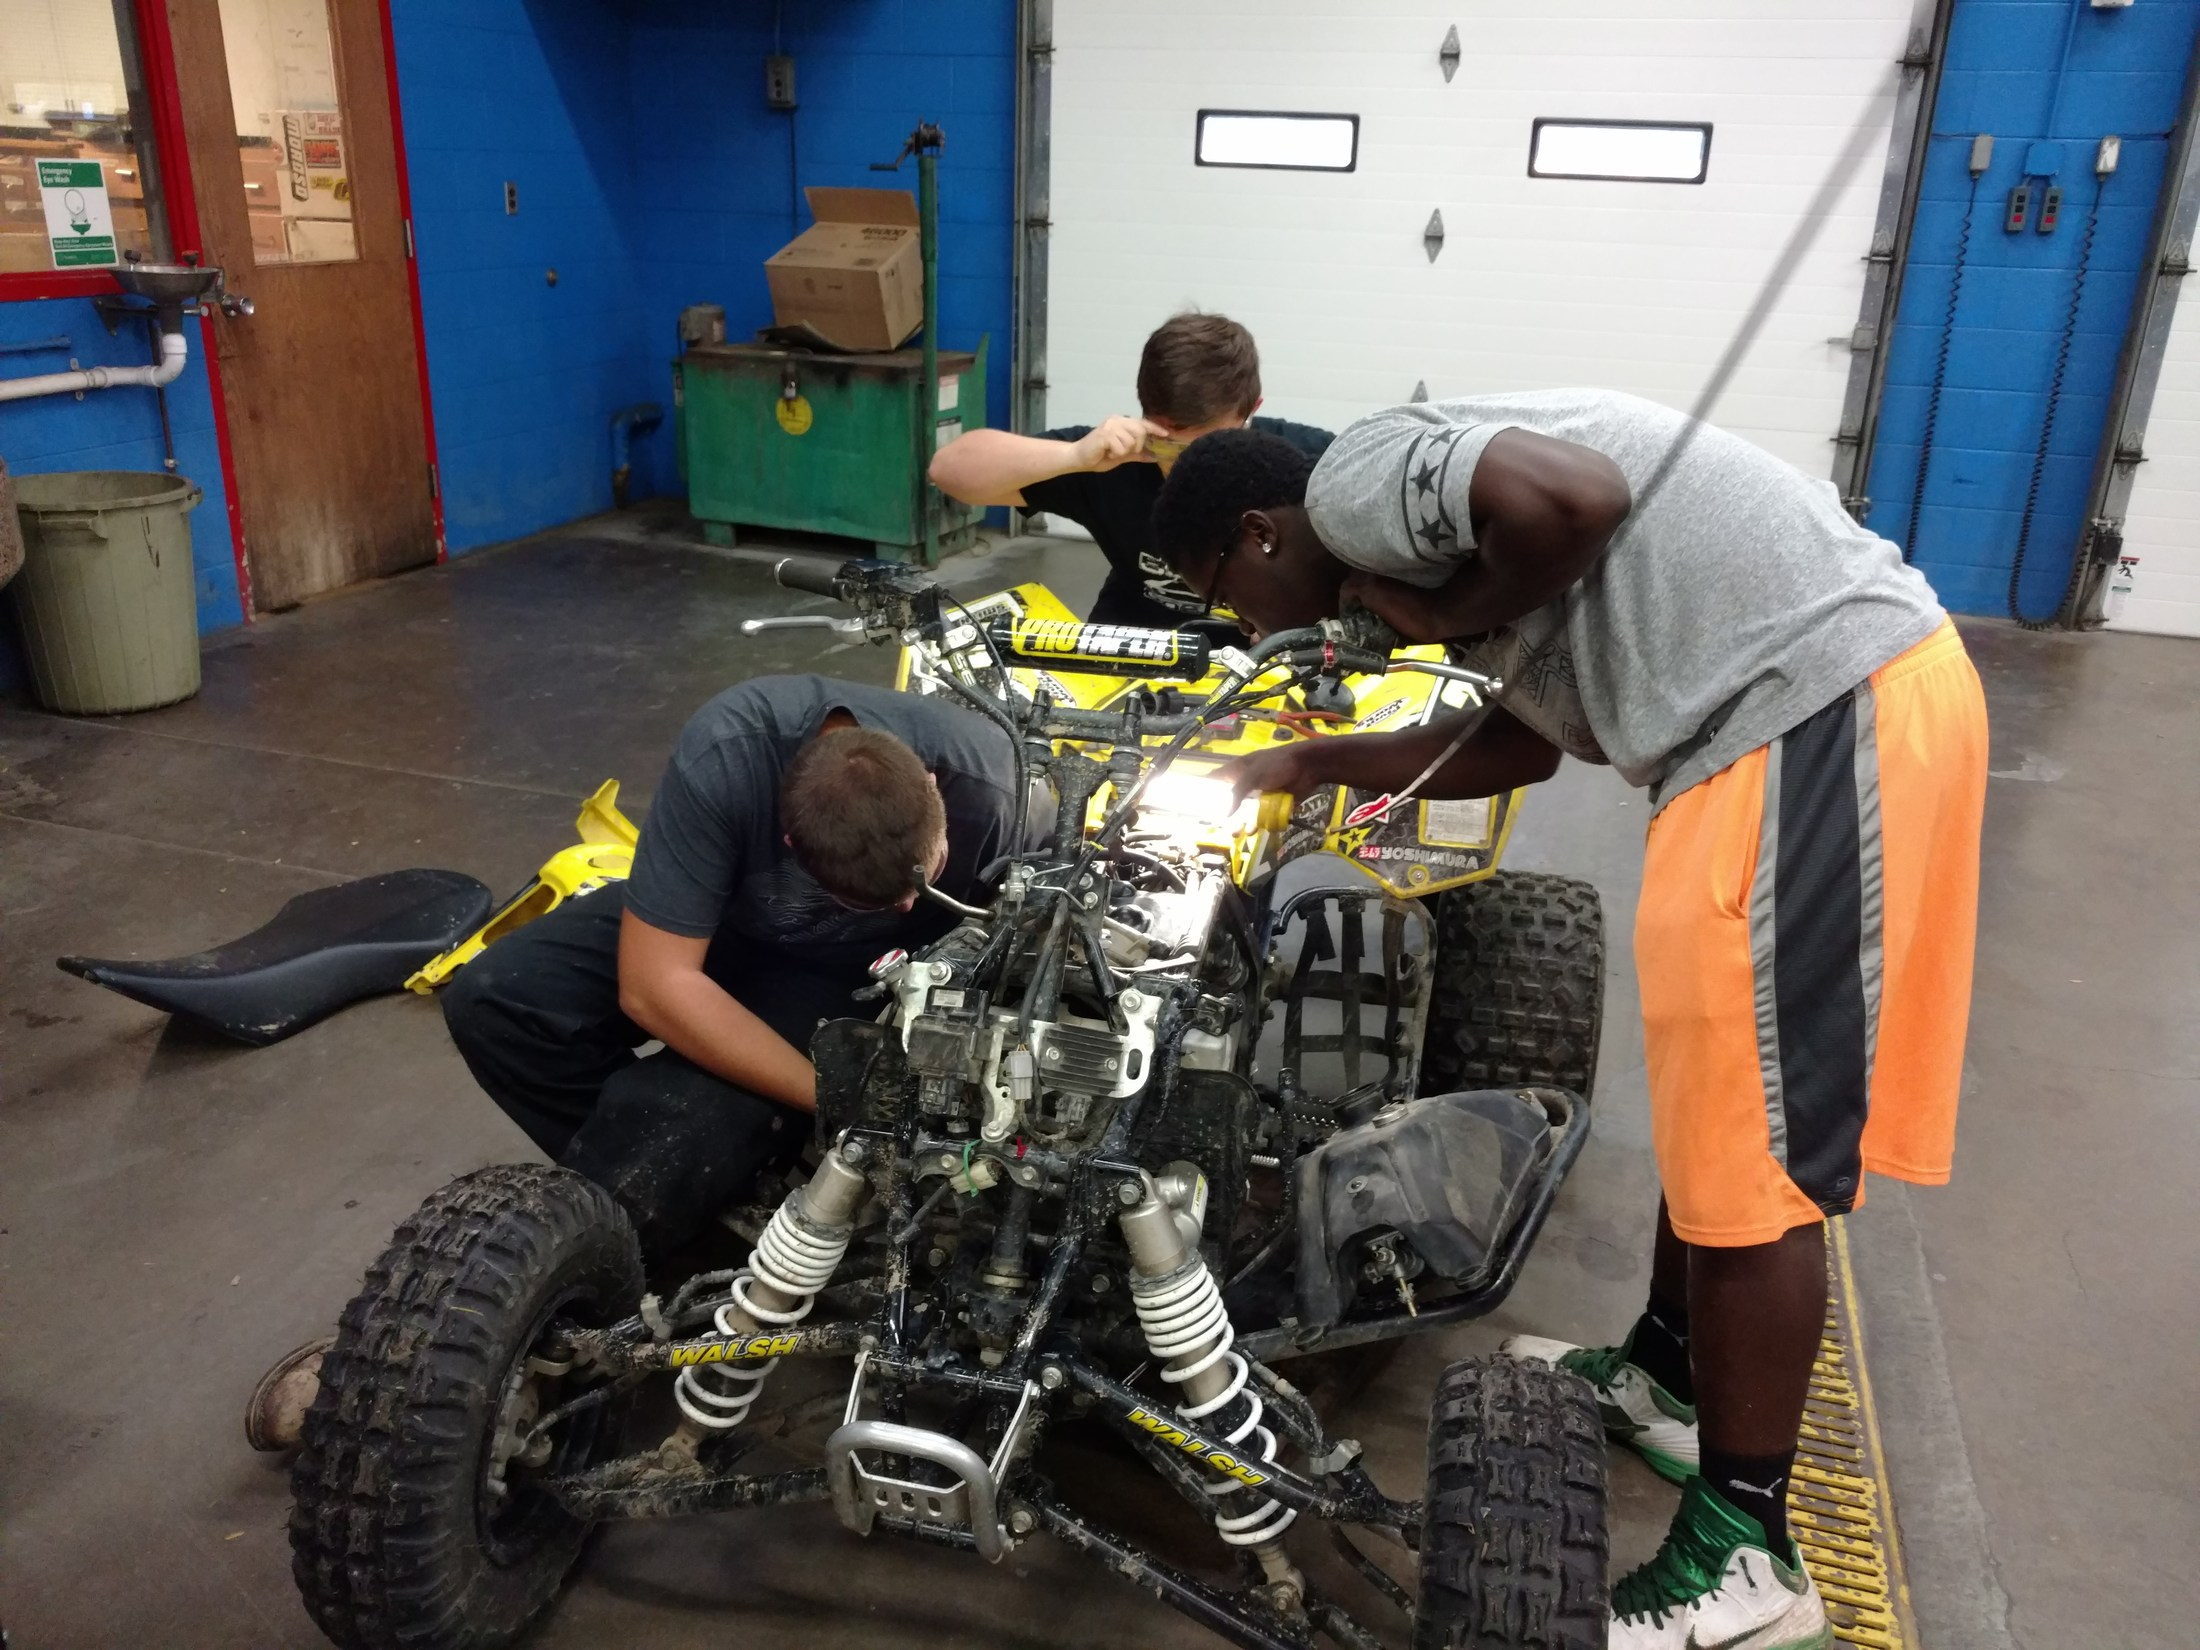 Tearing down and cleaning the fuel system on a Quad